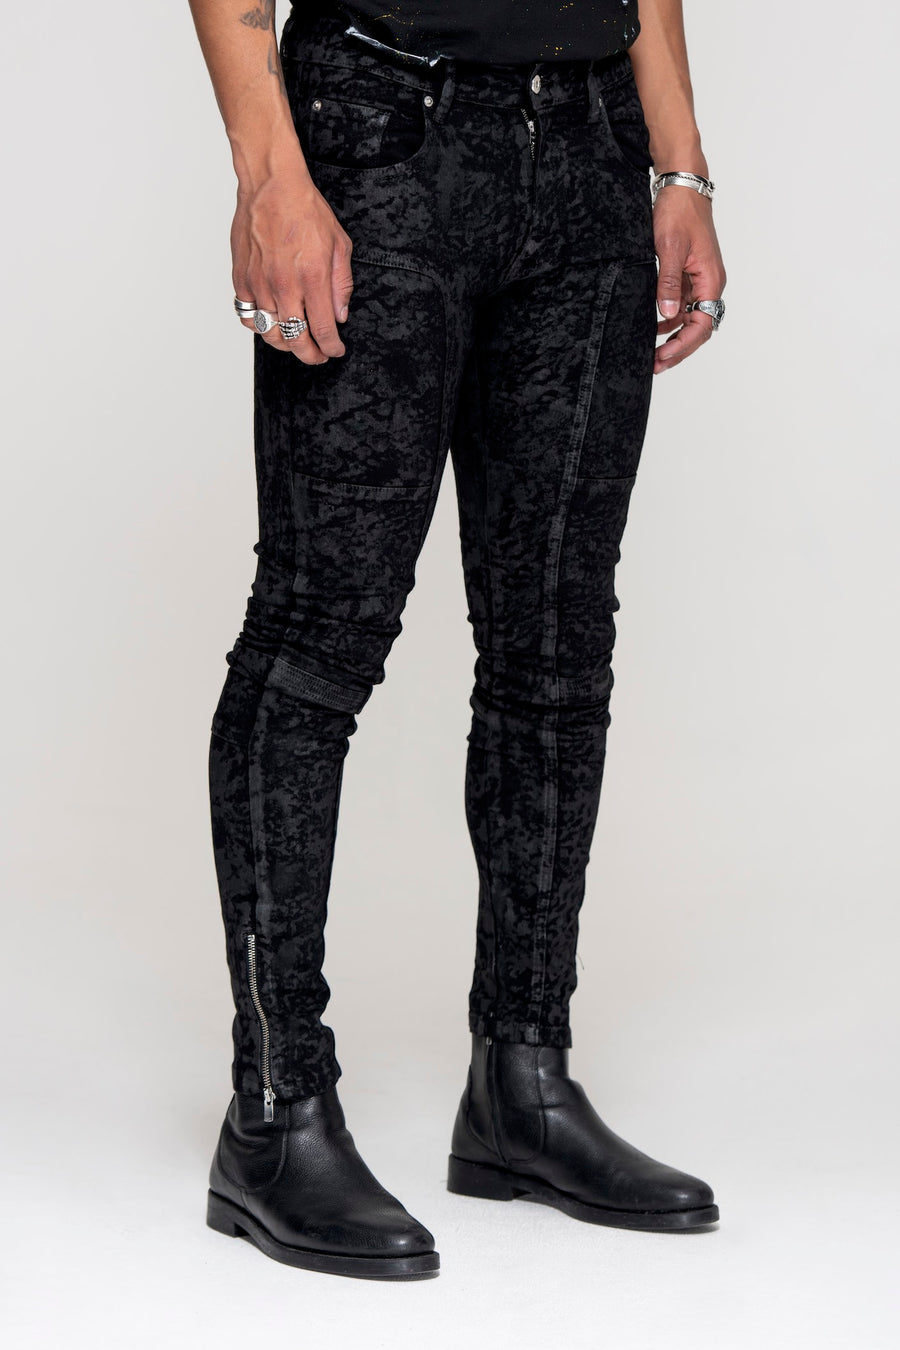 Essential Jeans Black Wax - Men's Slim Fit Jeans